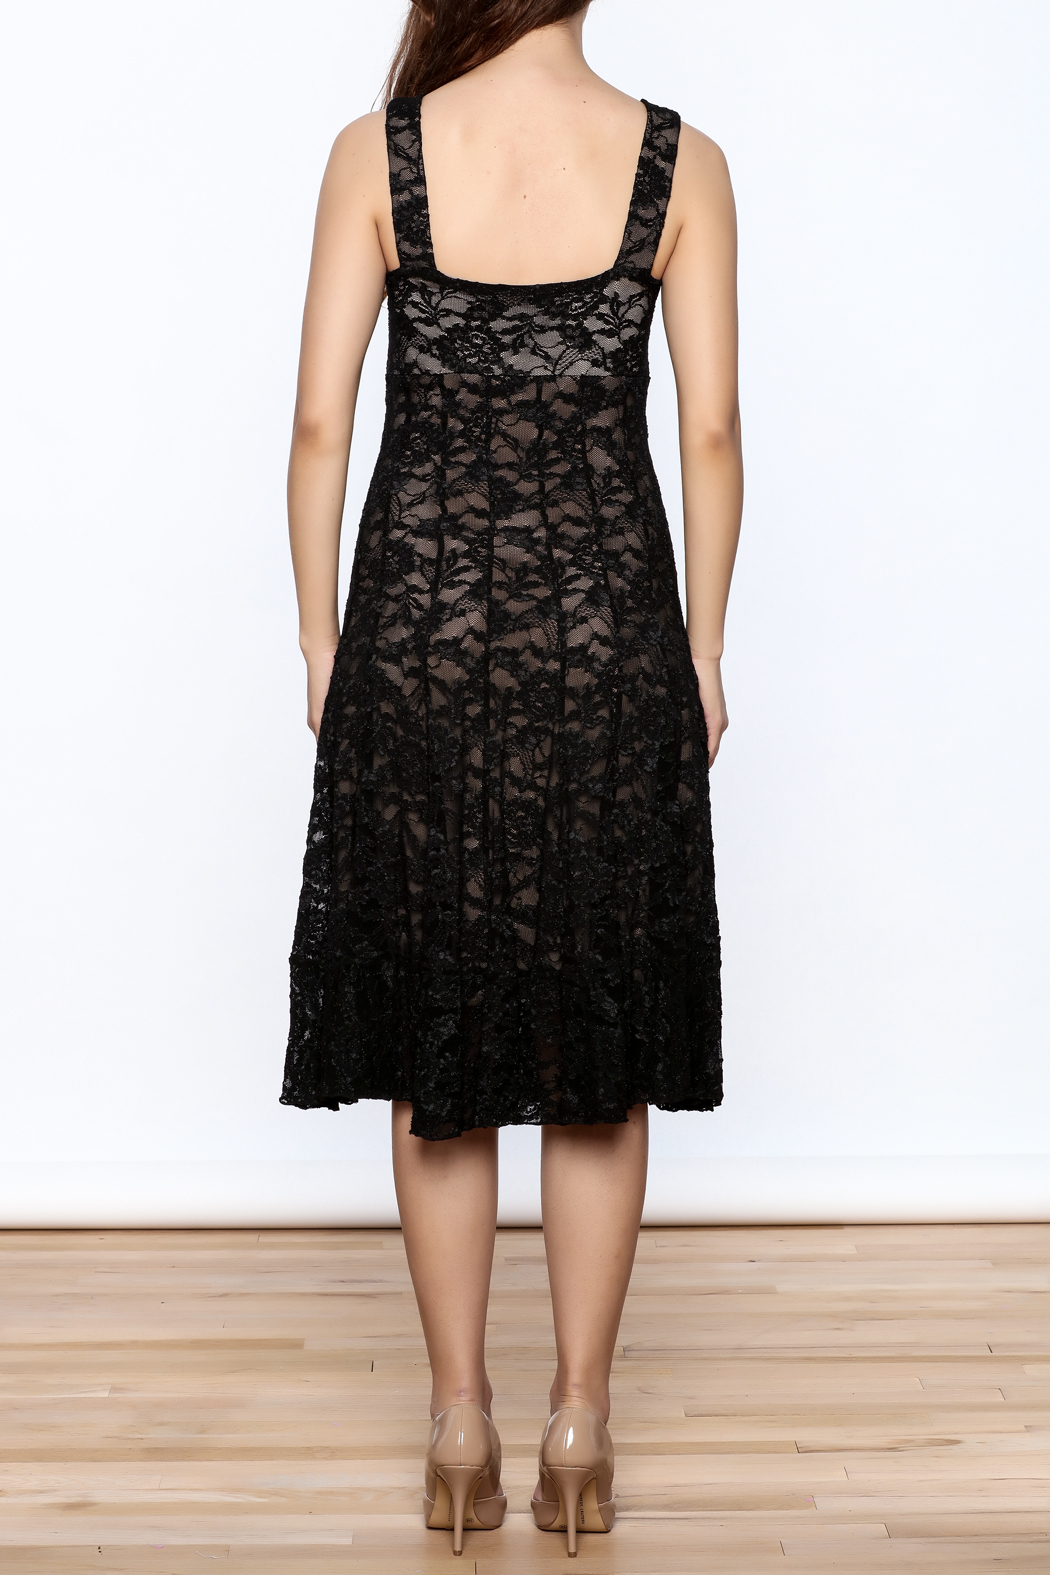 Sharon Max Black Lace Midi Dress - Back Cropped Image